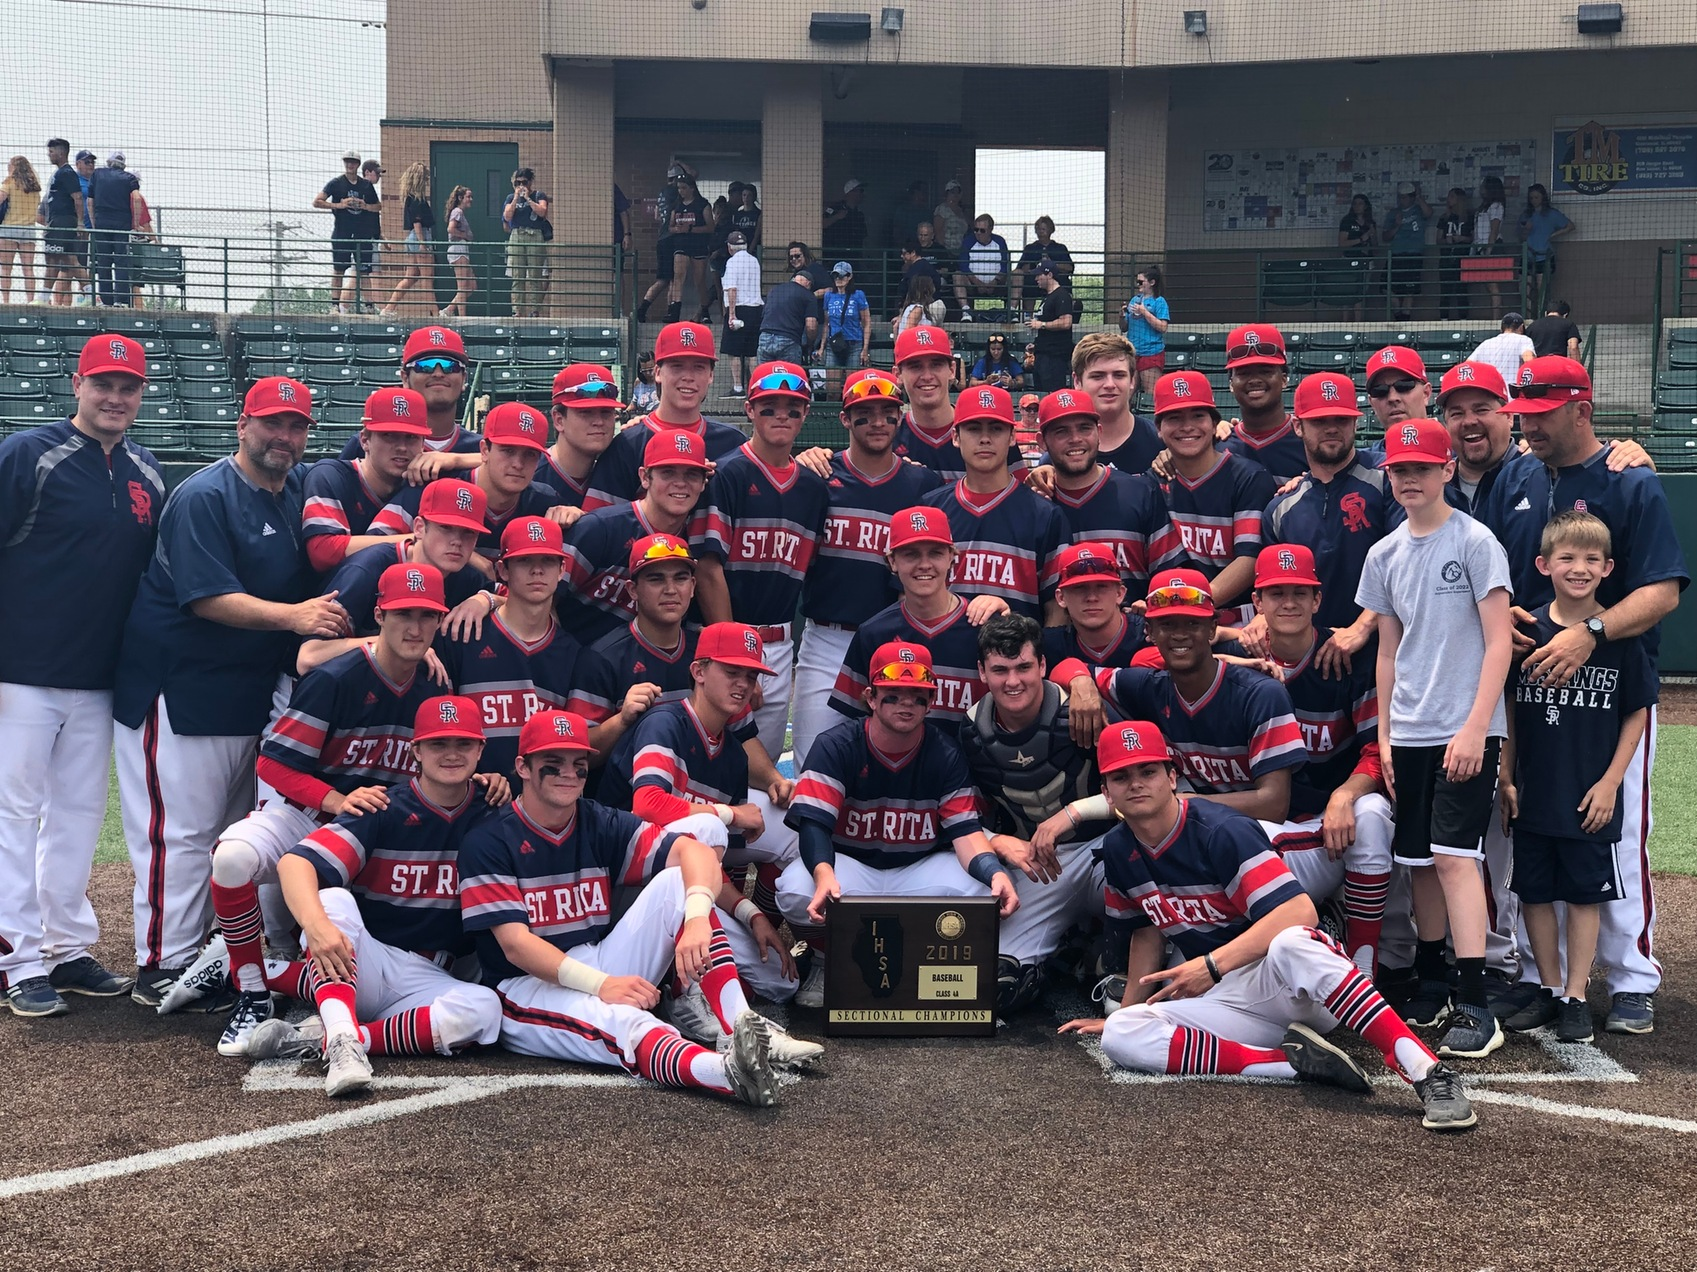 St. Rita Baseball wins the Class 4A Sectional Championship with a 7-0 win over Nazareth!